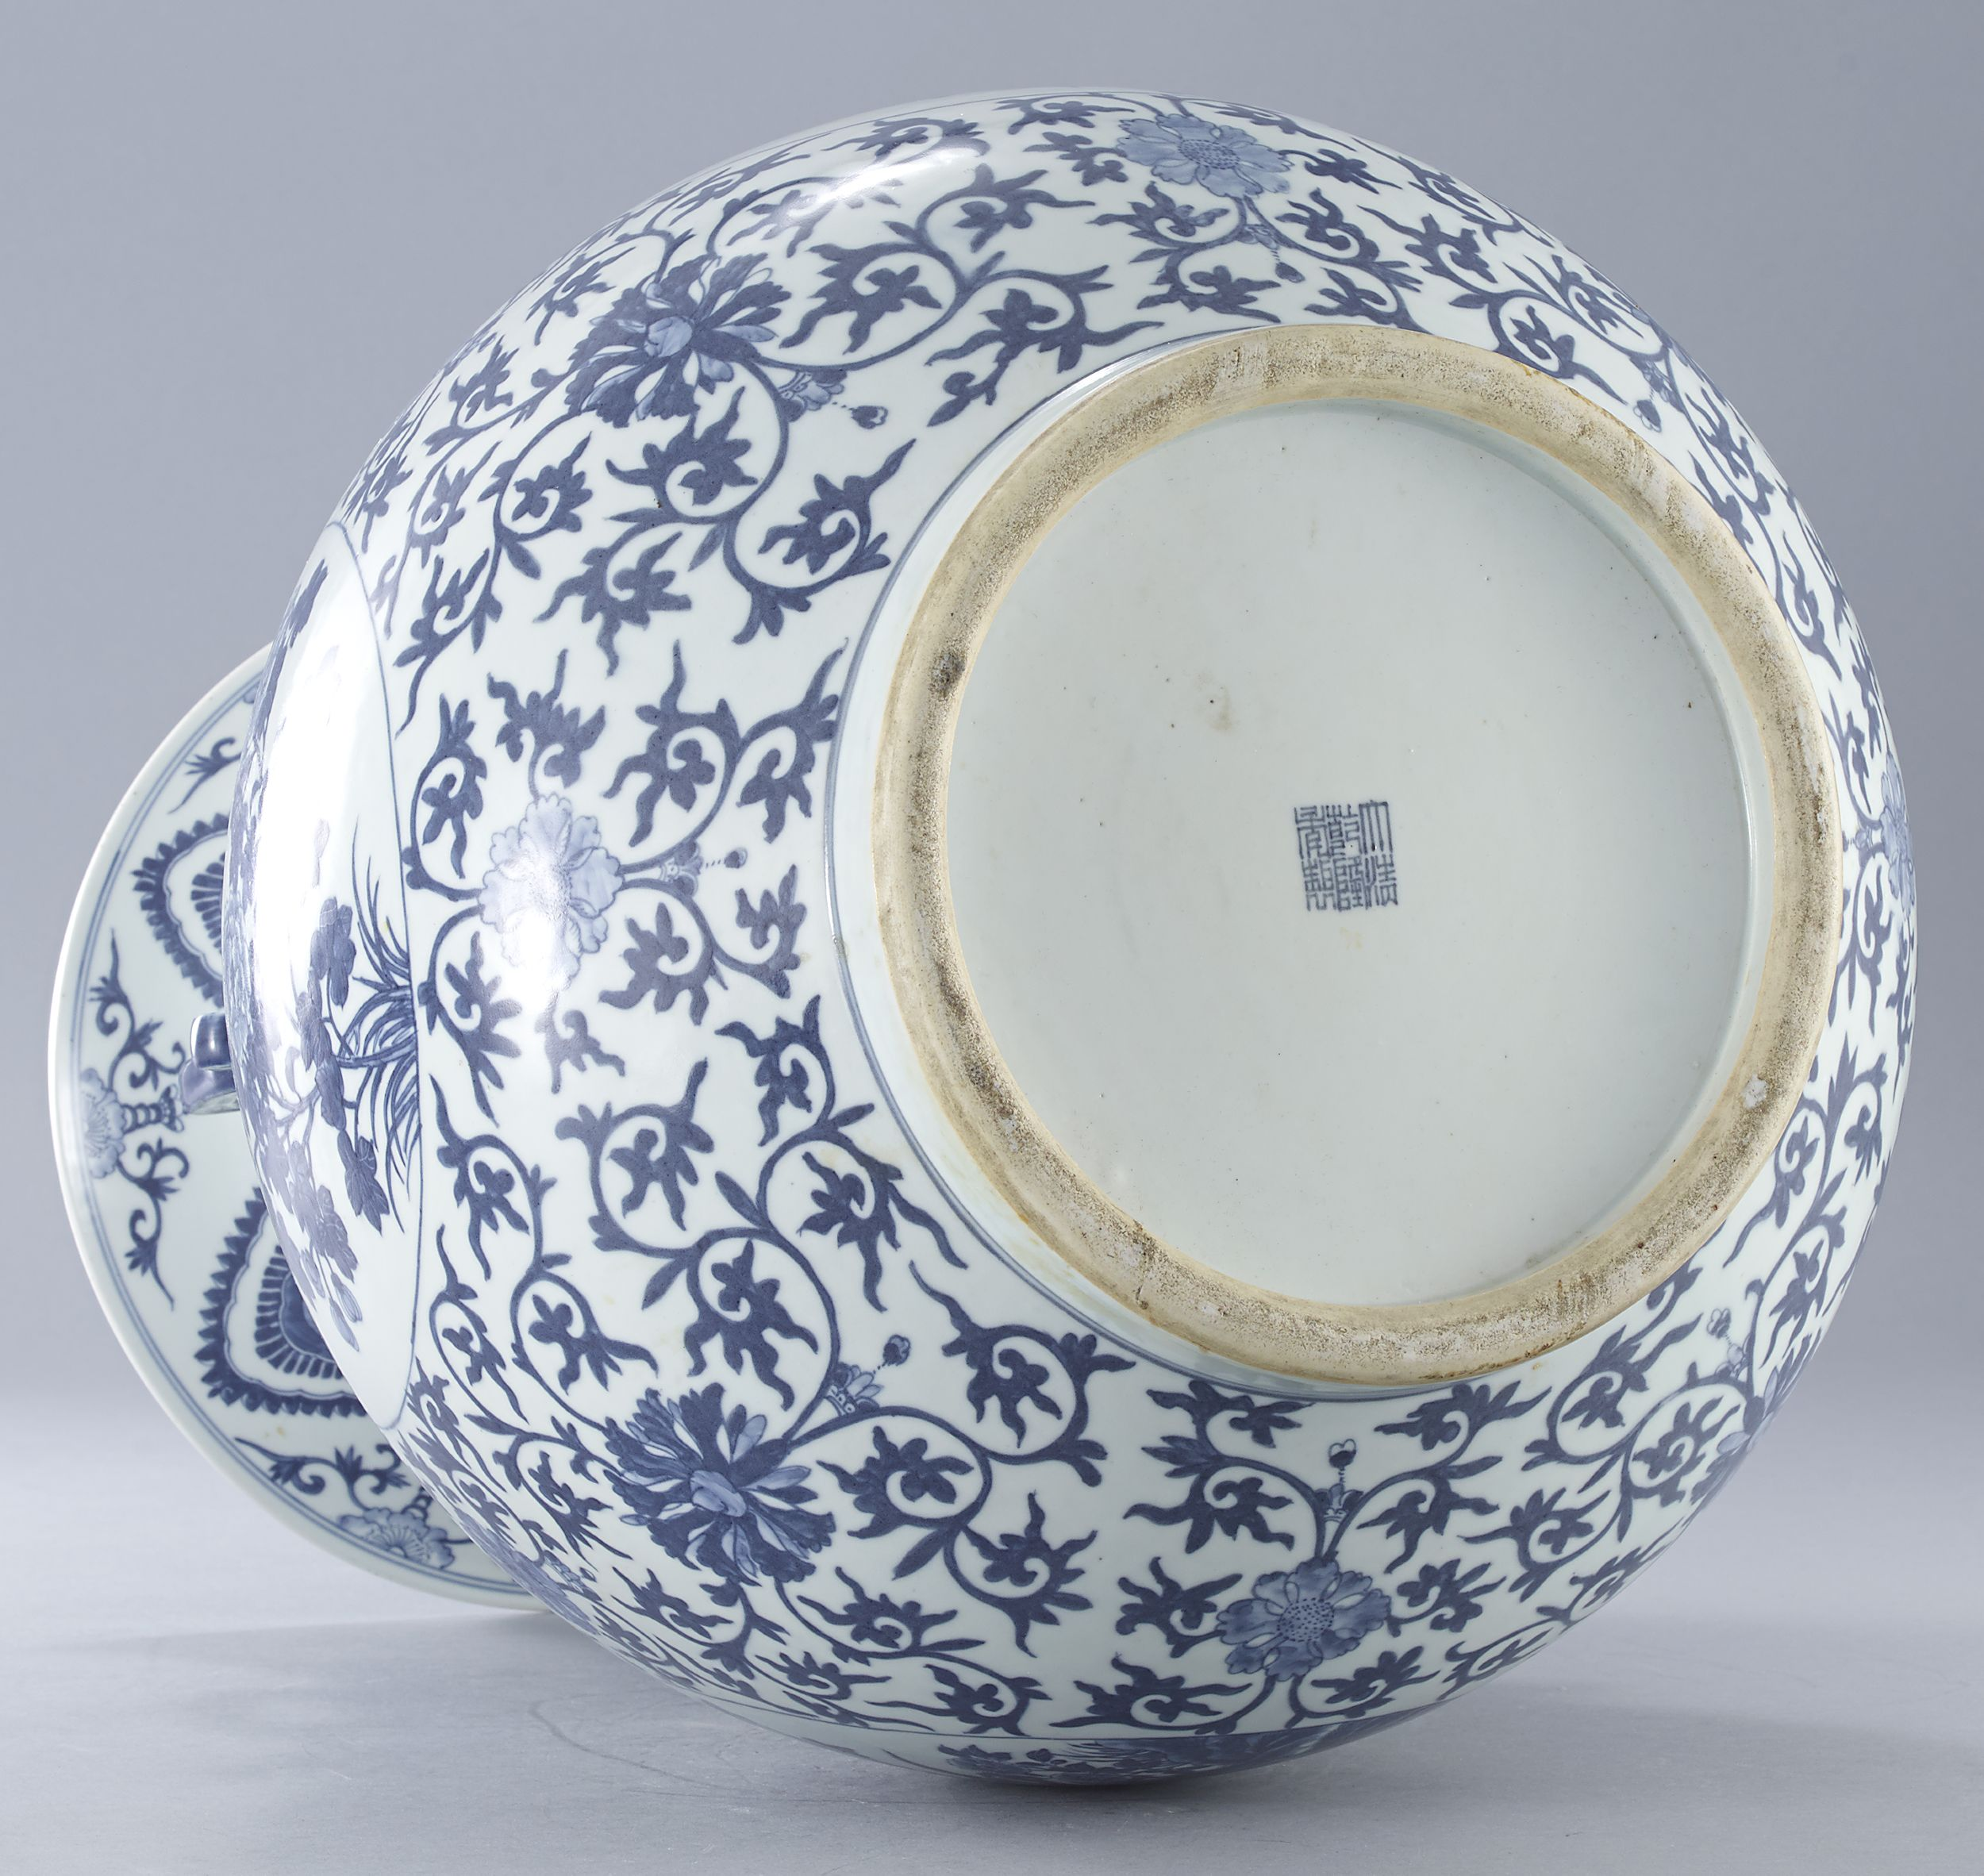 A Large Blue and White Vase